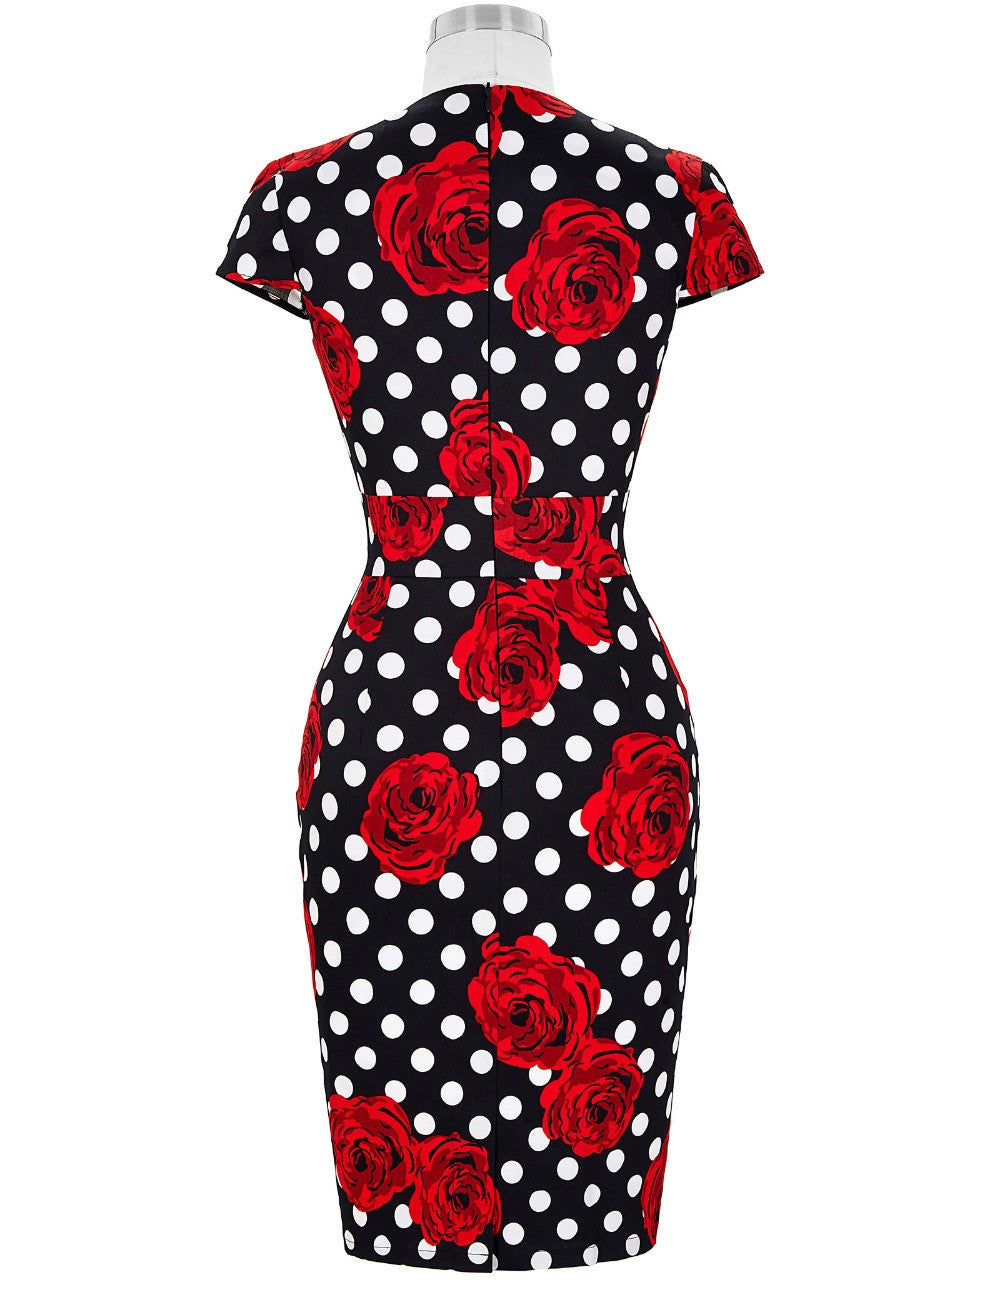 Sexy Women Dress Robe Retro Vintage Cap Sleeve Hips-Wrapped Slim Fitted Office Dress Floral Patterns Sheath Bodycon Pencil Dress